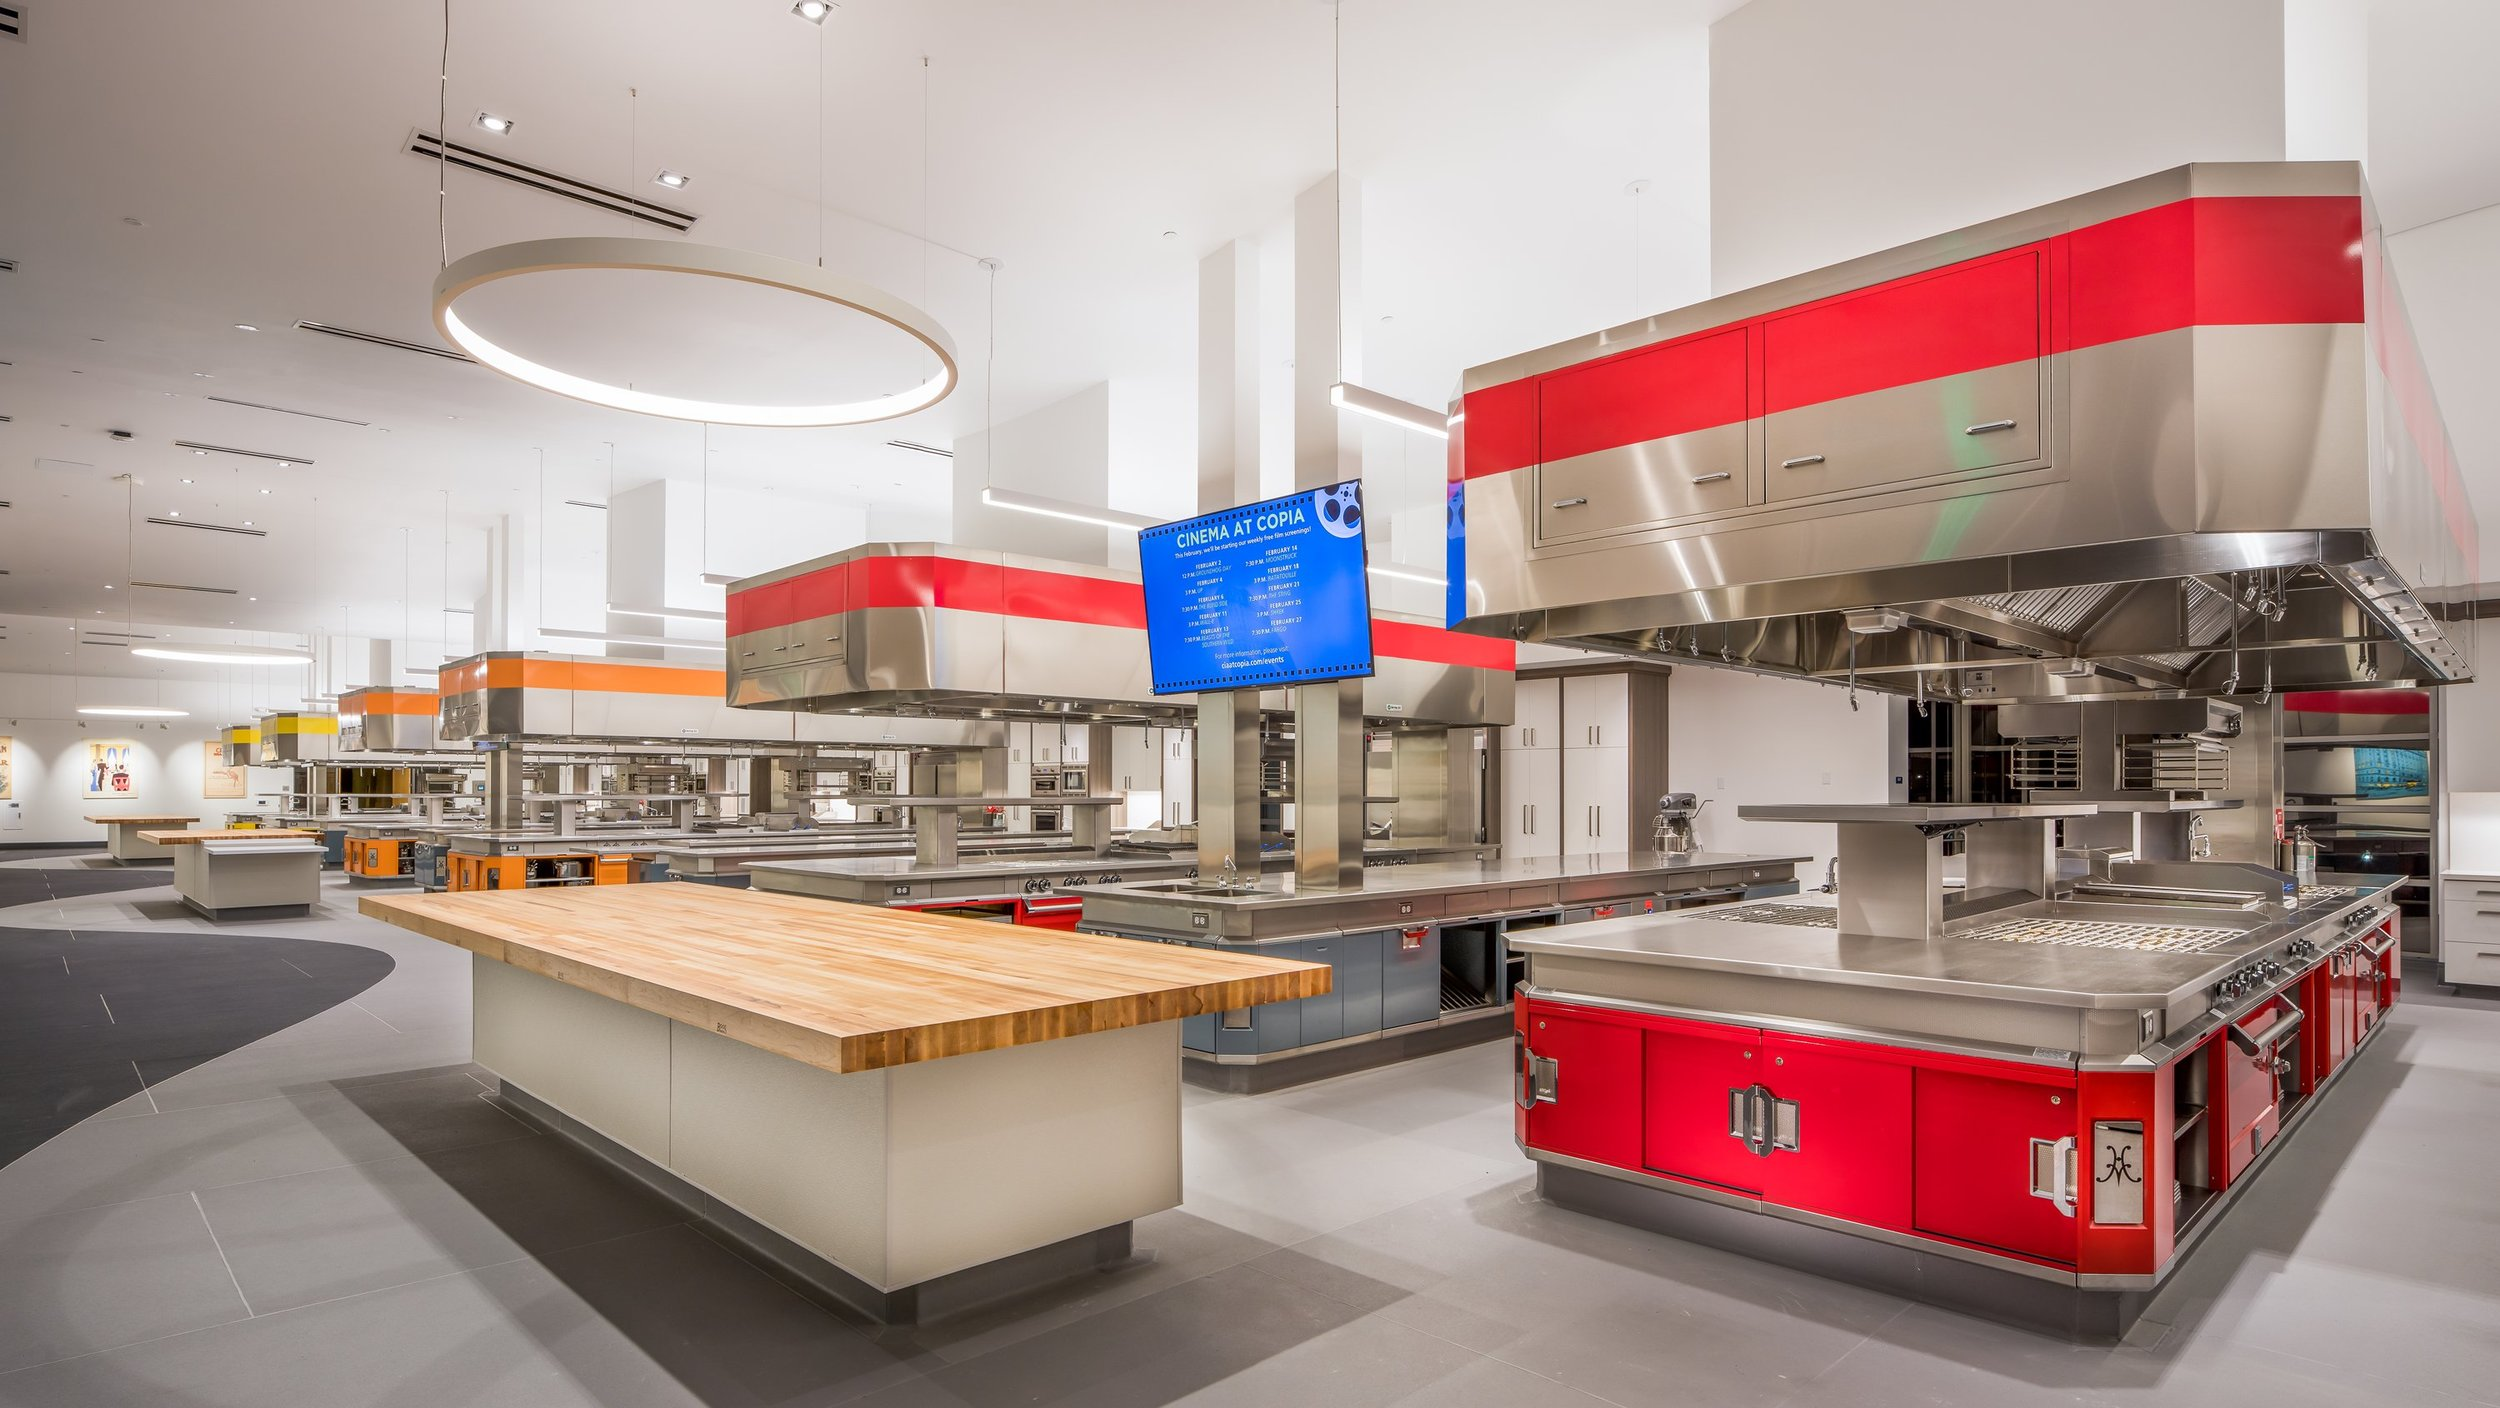 Hands-on kitchen workshops will be held in Copia's new Hestan Kitchen